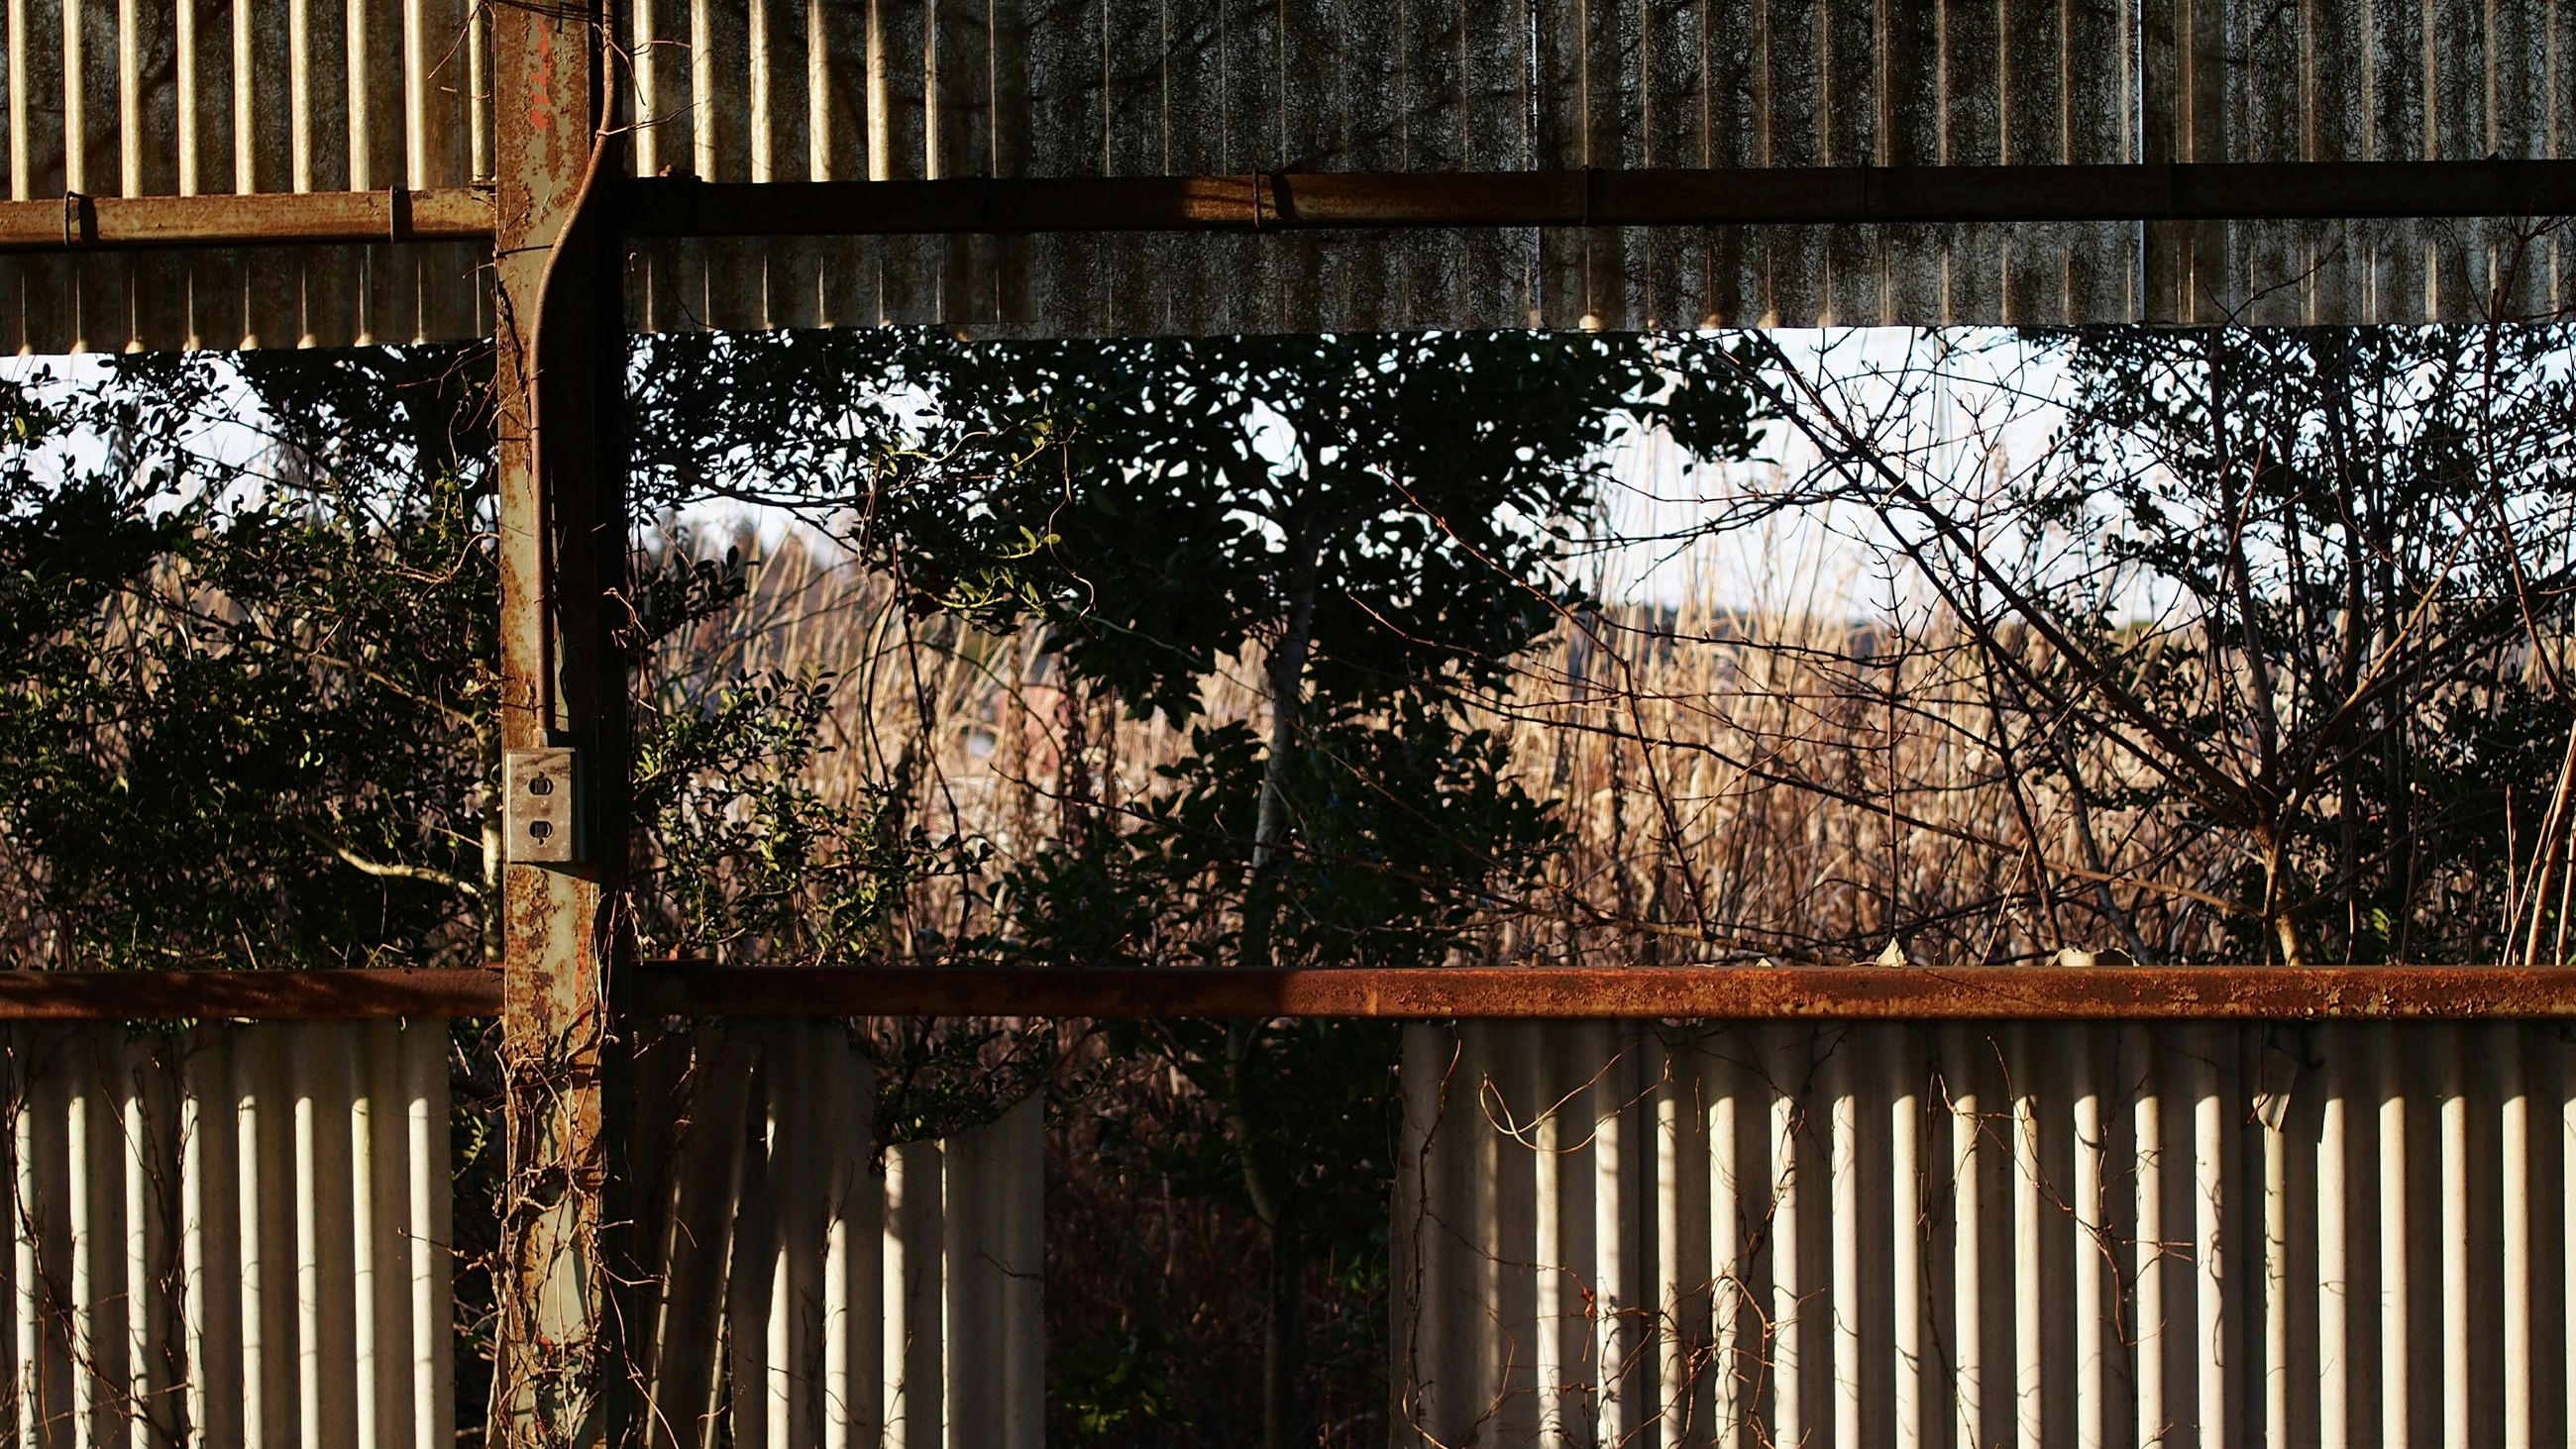 architecture, fence, built structure, building exterior, window, tree, protection, railing, metal, safety, house, security, closed, gate, growth, day, no people, outdoors, chainlink fence, plant